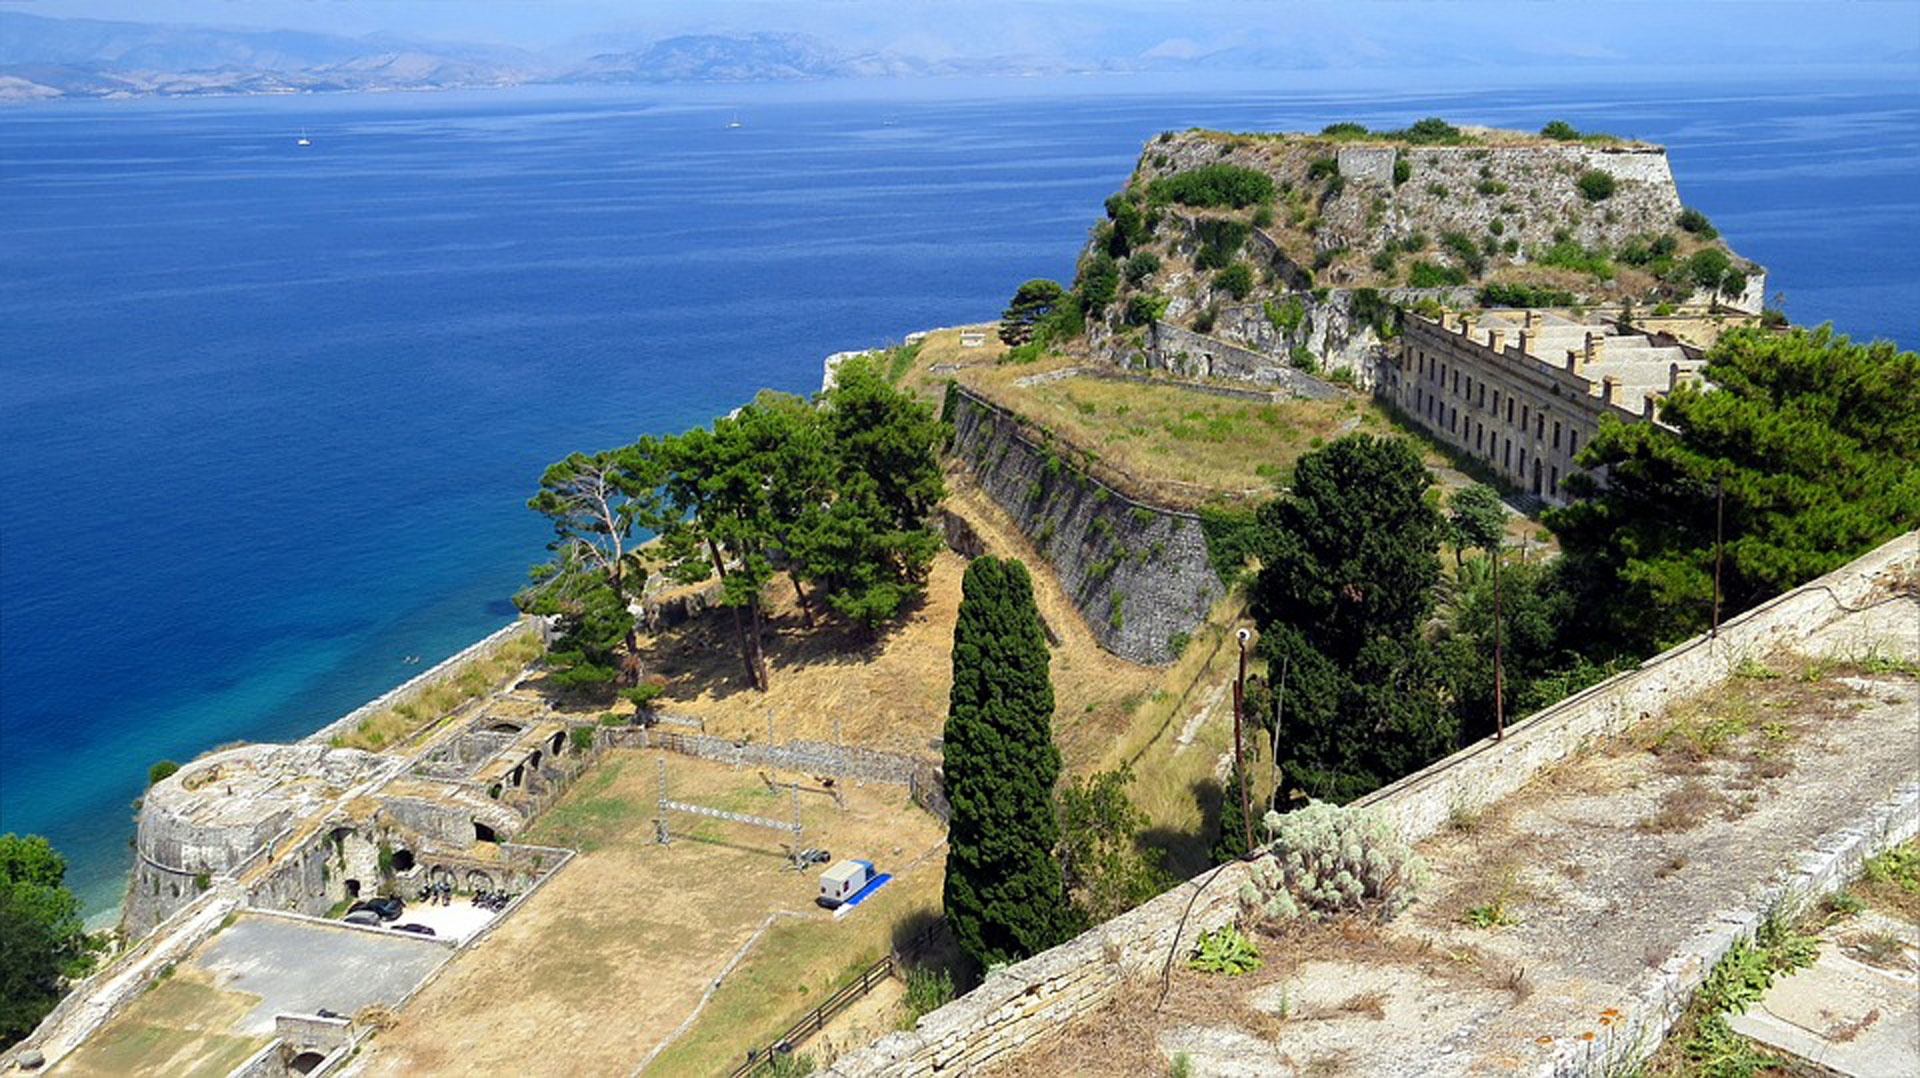 Corfu historical walking tour